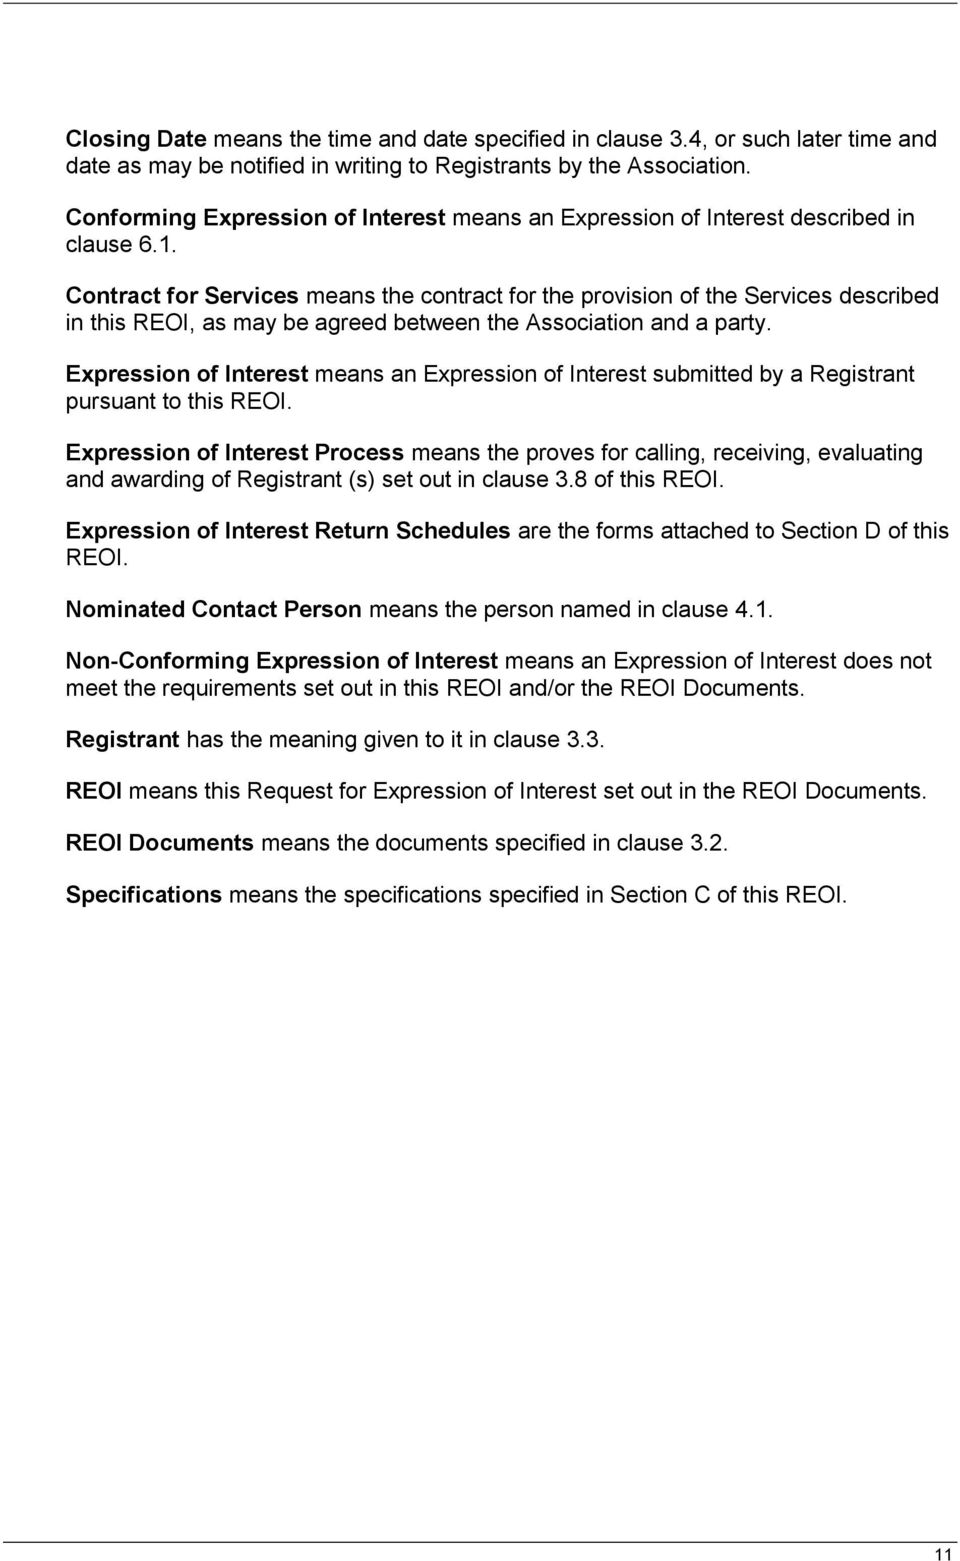 Contract for Services means the contract for the provision of the Services described in this REOI, as may be agreed between the Association and a party.